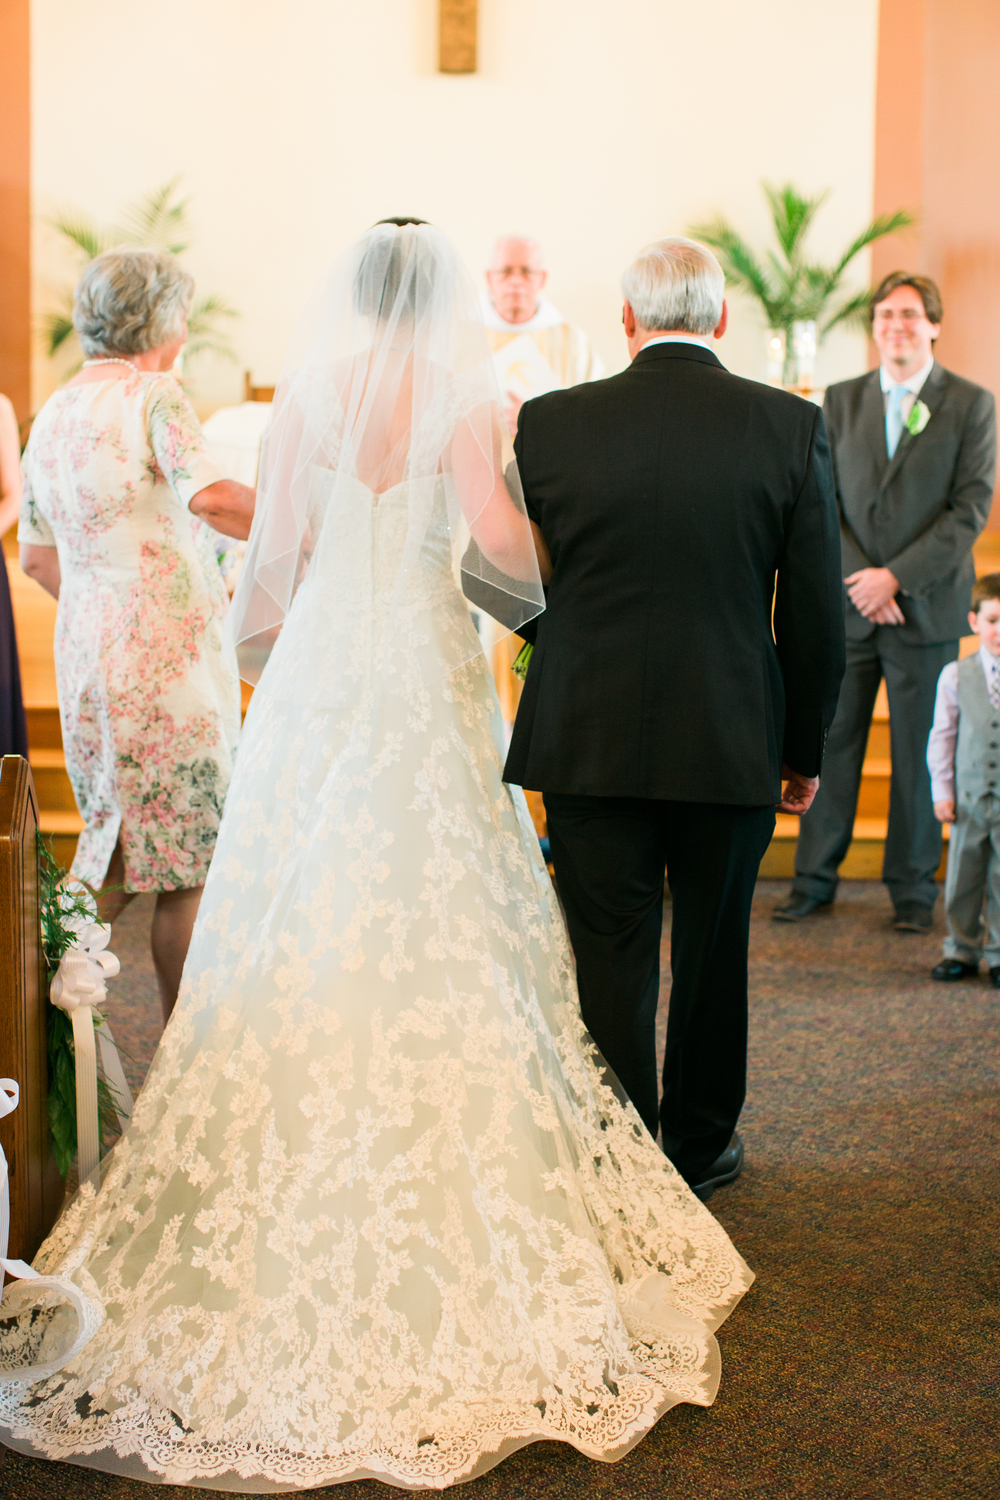 Emily & Daniel wedding ceremony part 2 (9 of 206).jpg